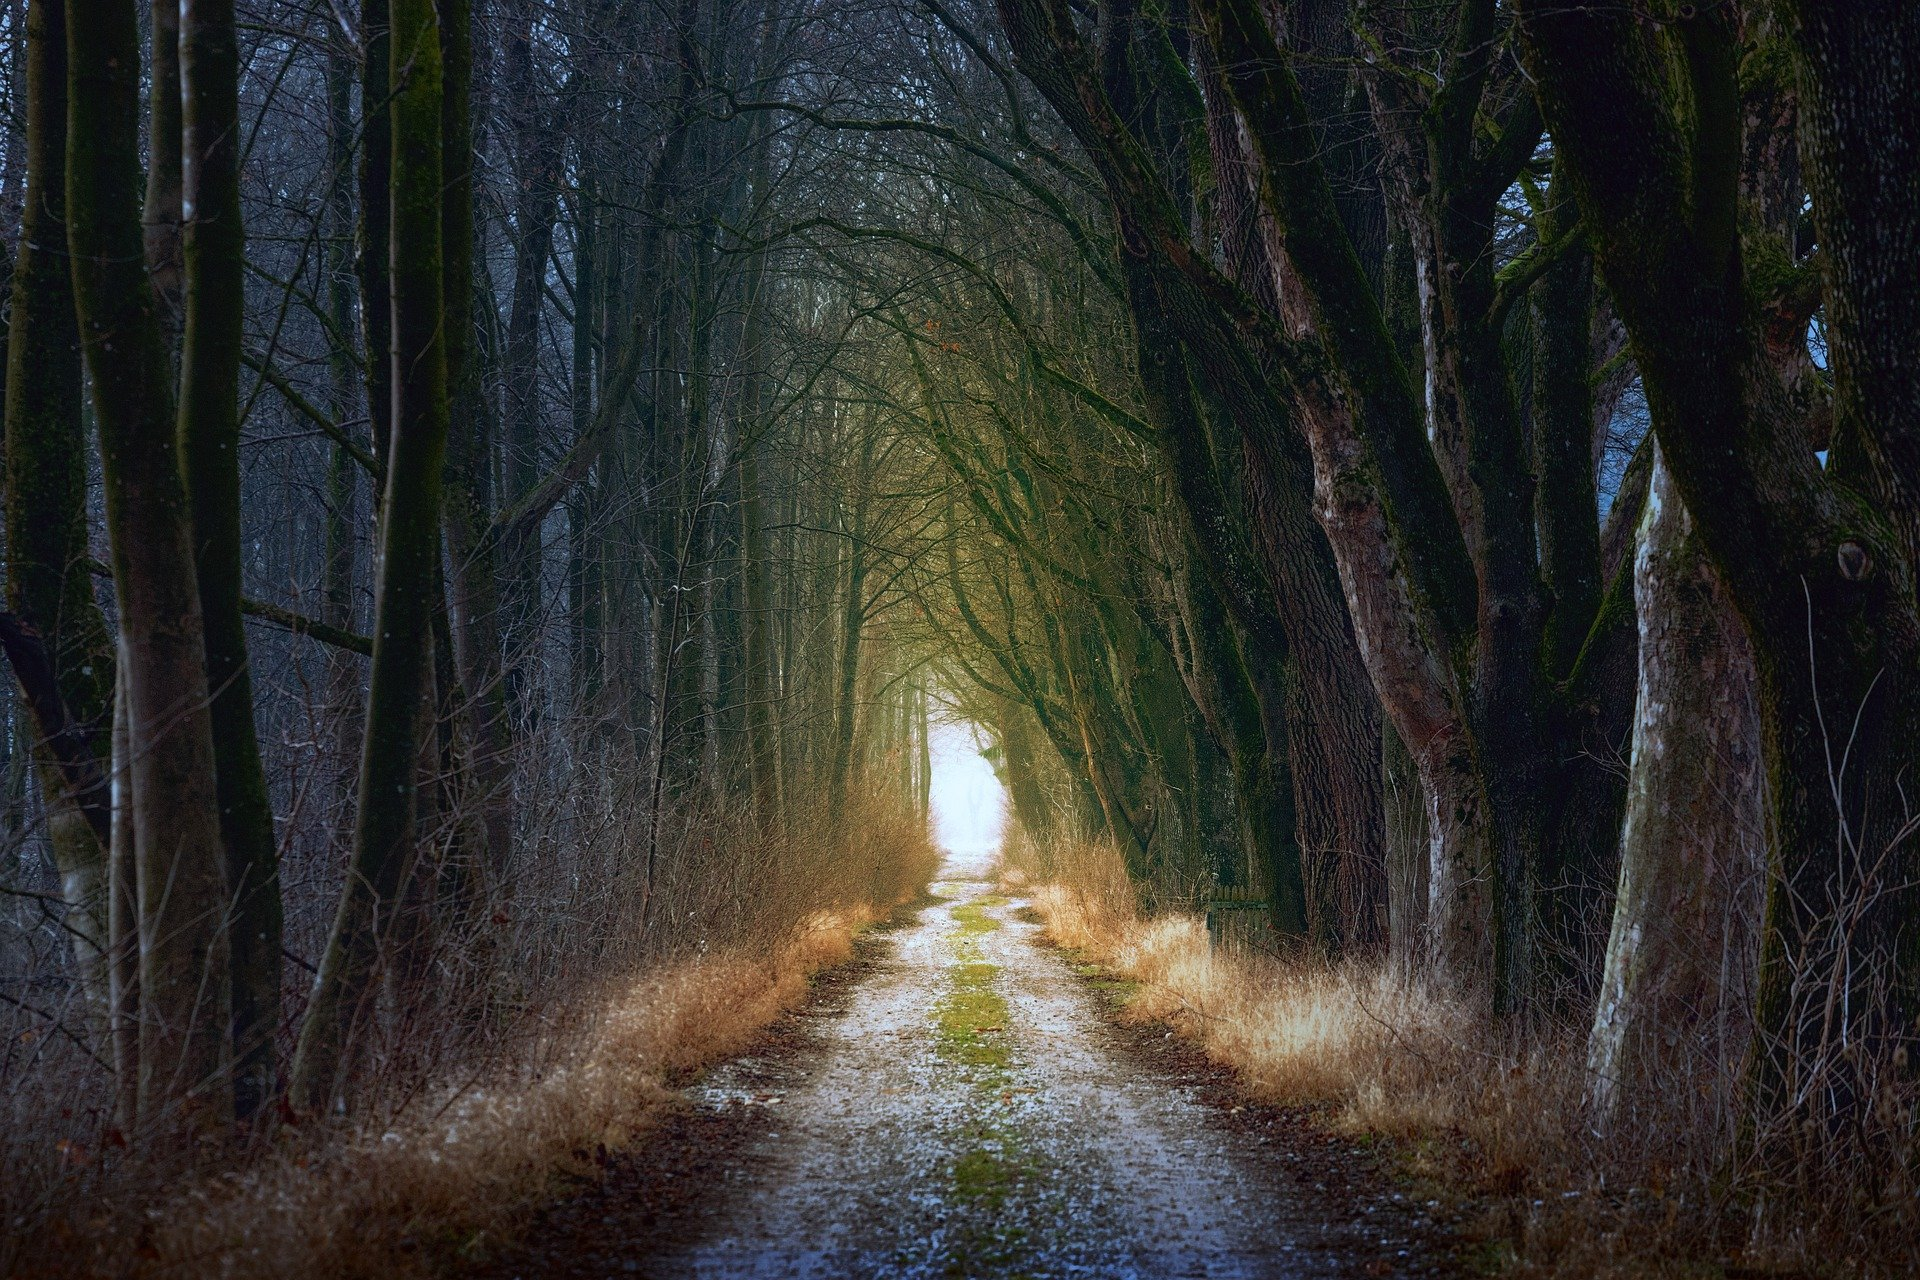 The hero's journey in story-telling is like this wooded path leading to the light in the distance